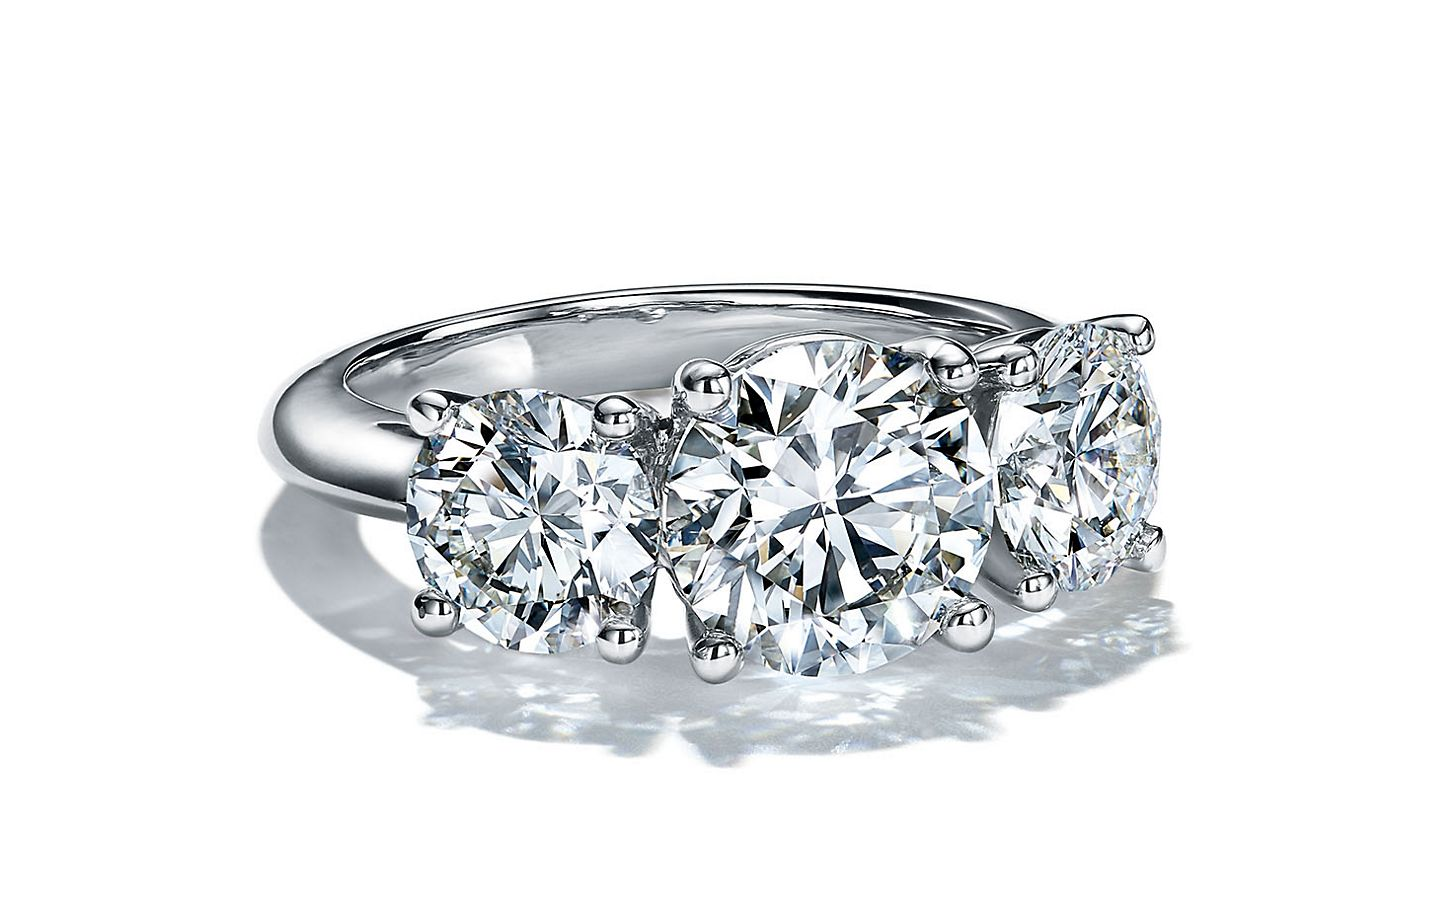 Tiffany & Co. Three Stone Engagement Rings